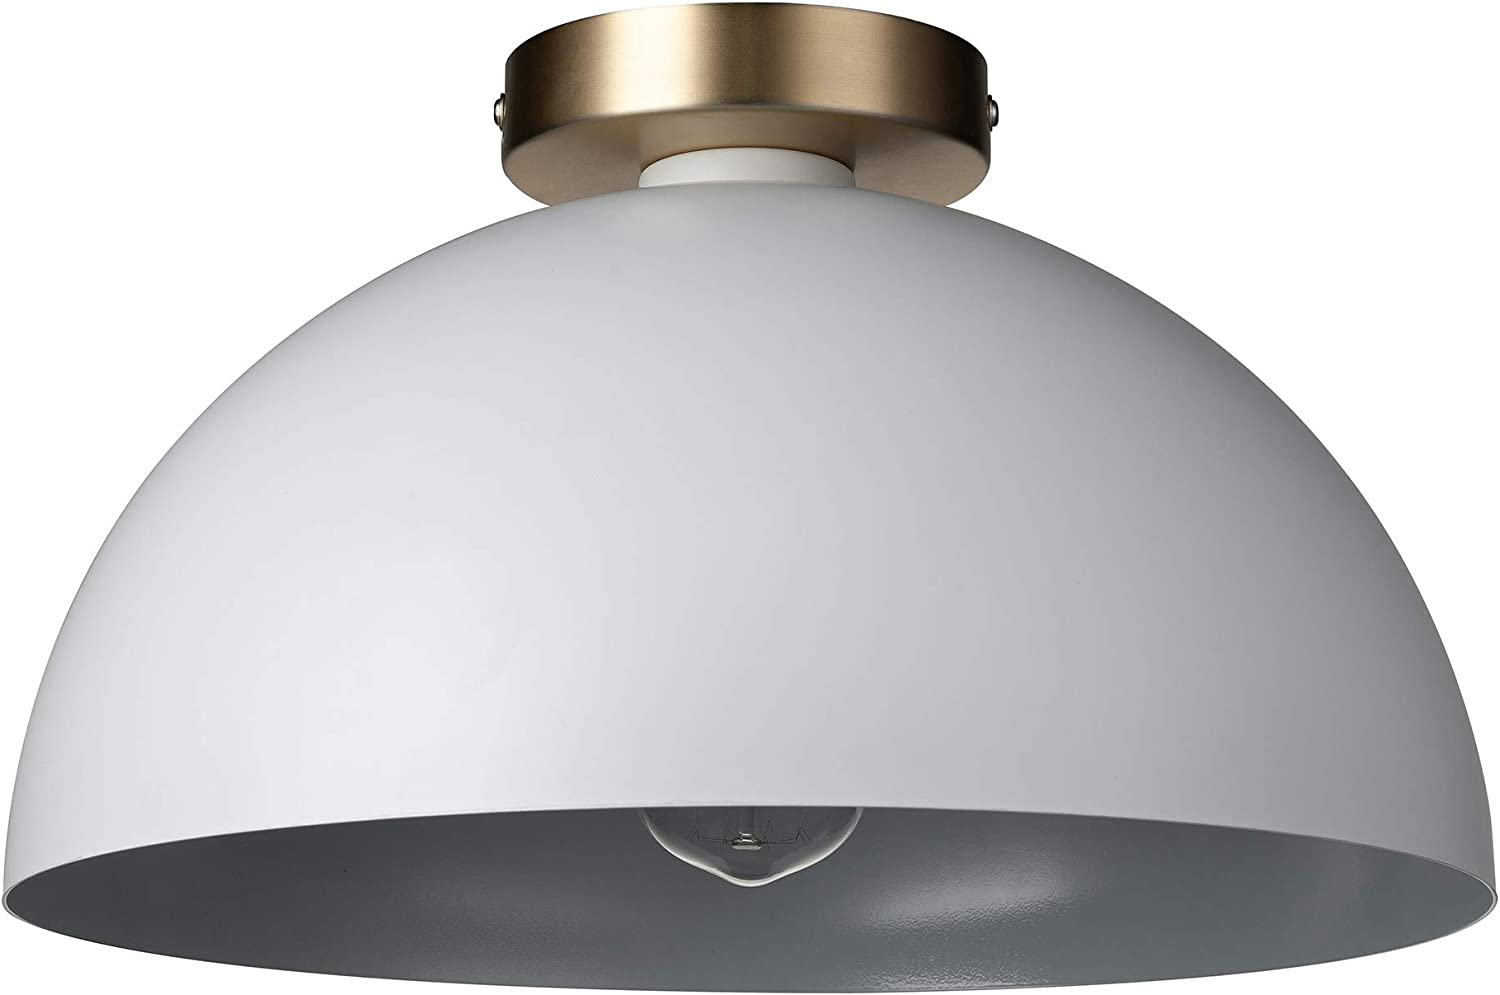 """Amazon Brand – Rivet Single-Light Flush-Mount Ceiling Light with Metal Shade, 7""""H, White and Brass"""